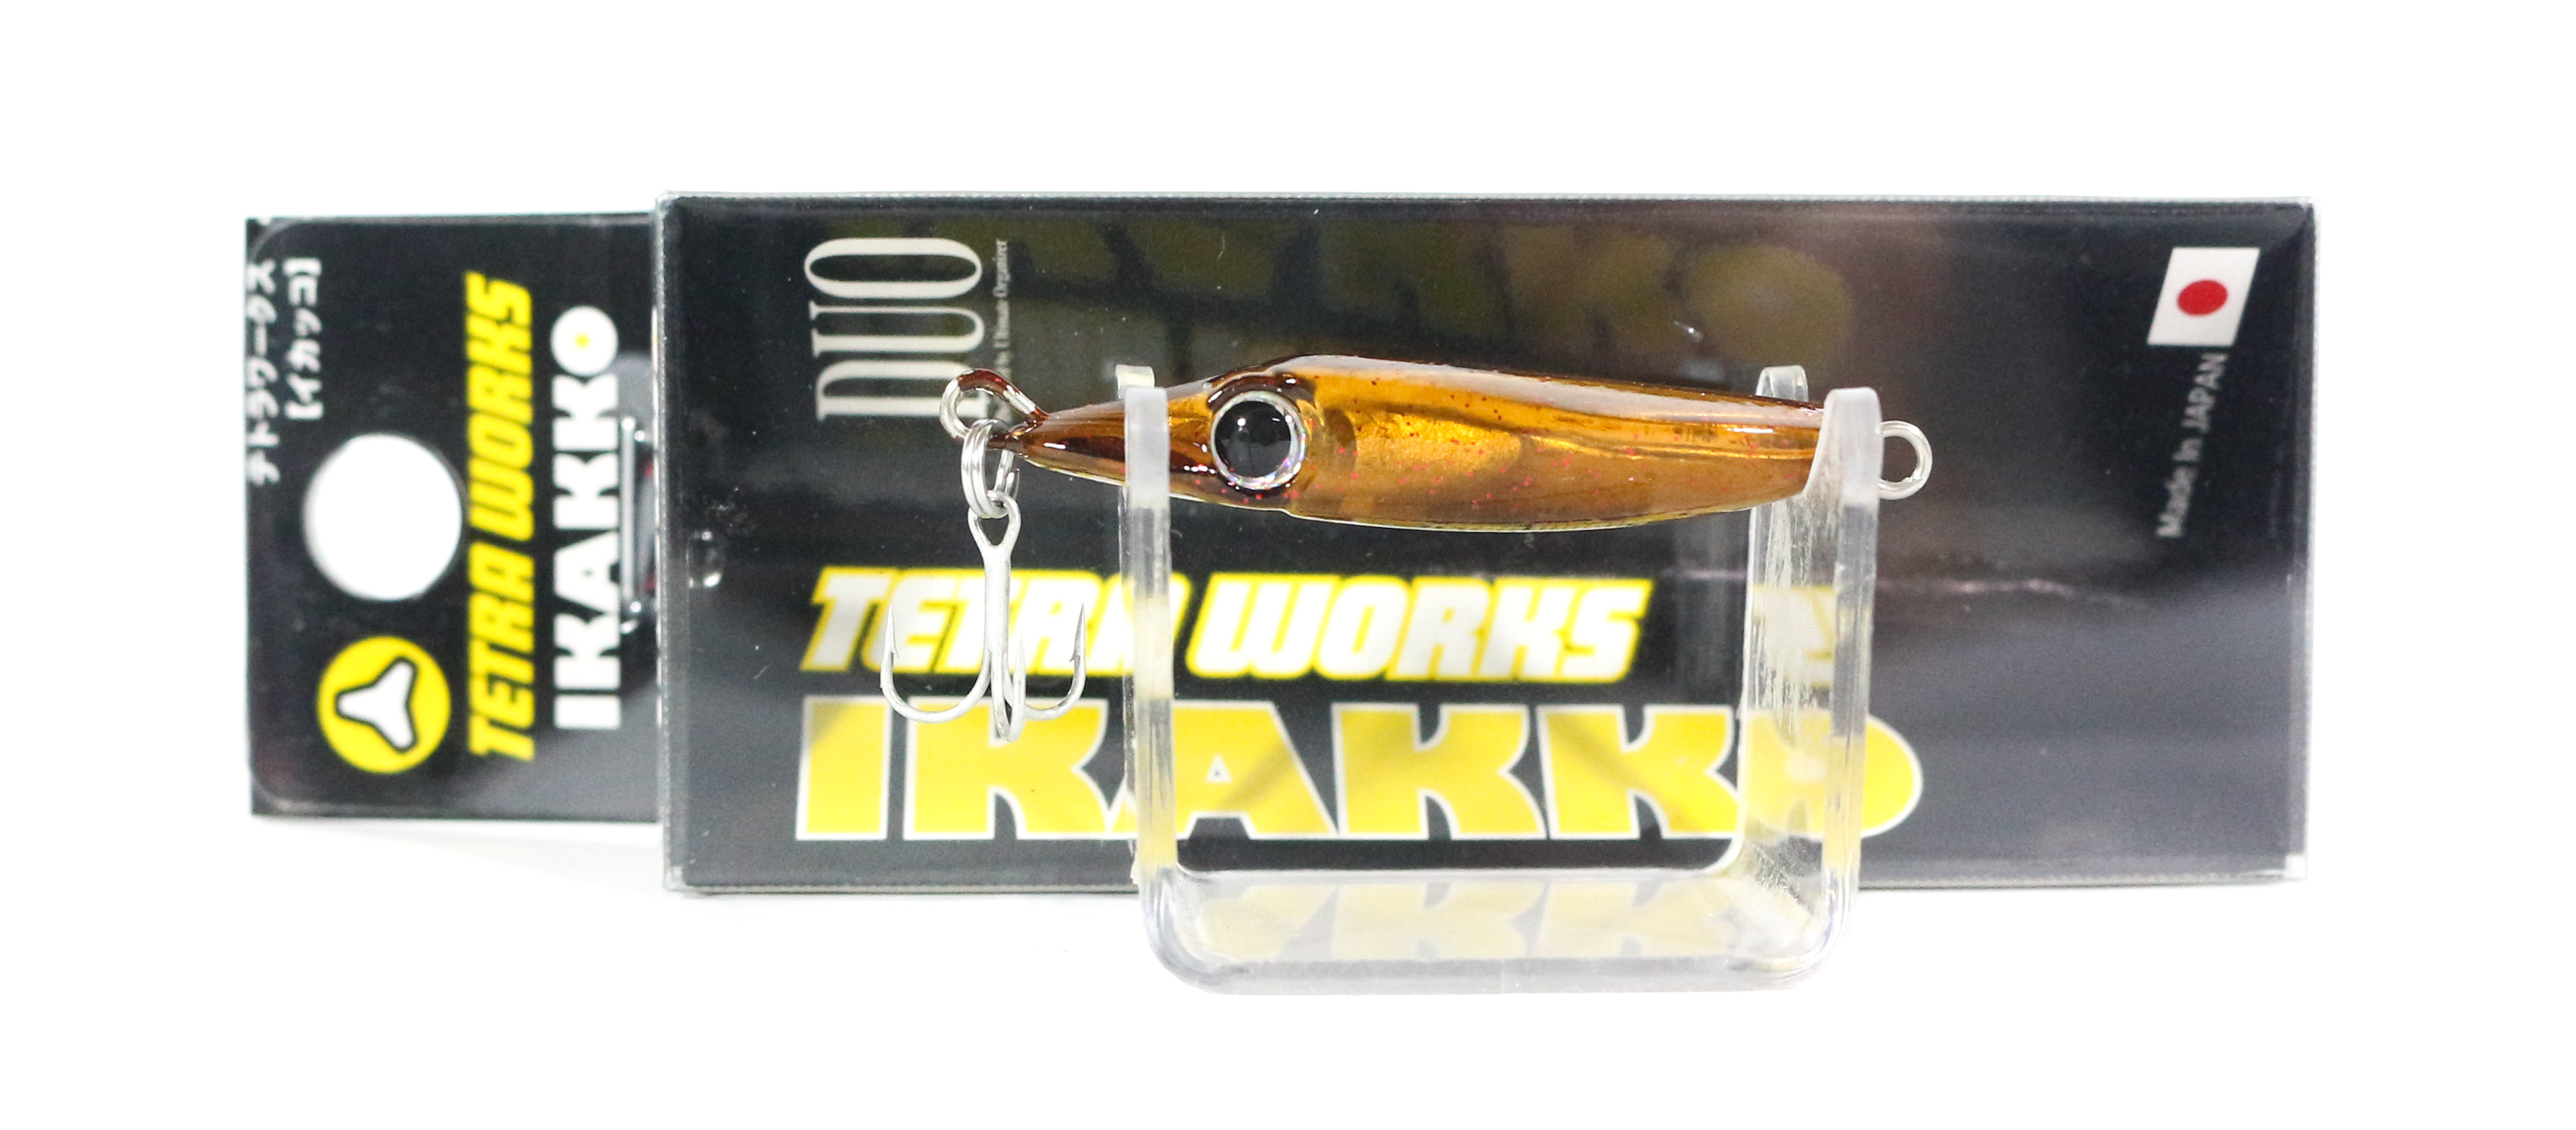 Duo Tetra Works Ikakko 38 mm Sinking Lure CCC0485 (5390)